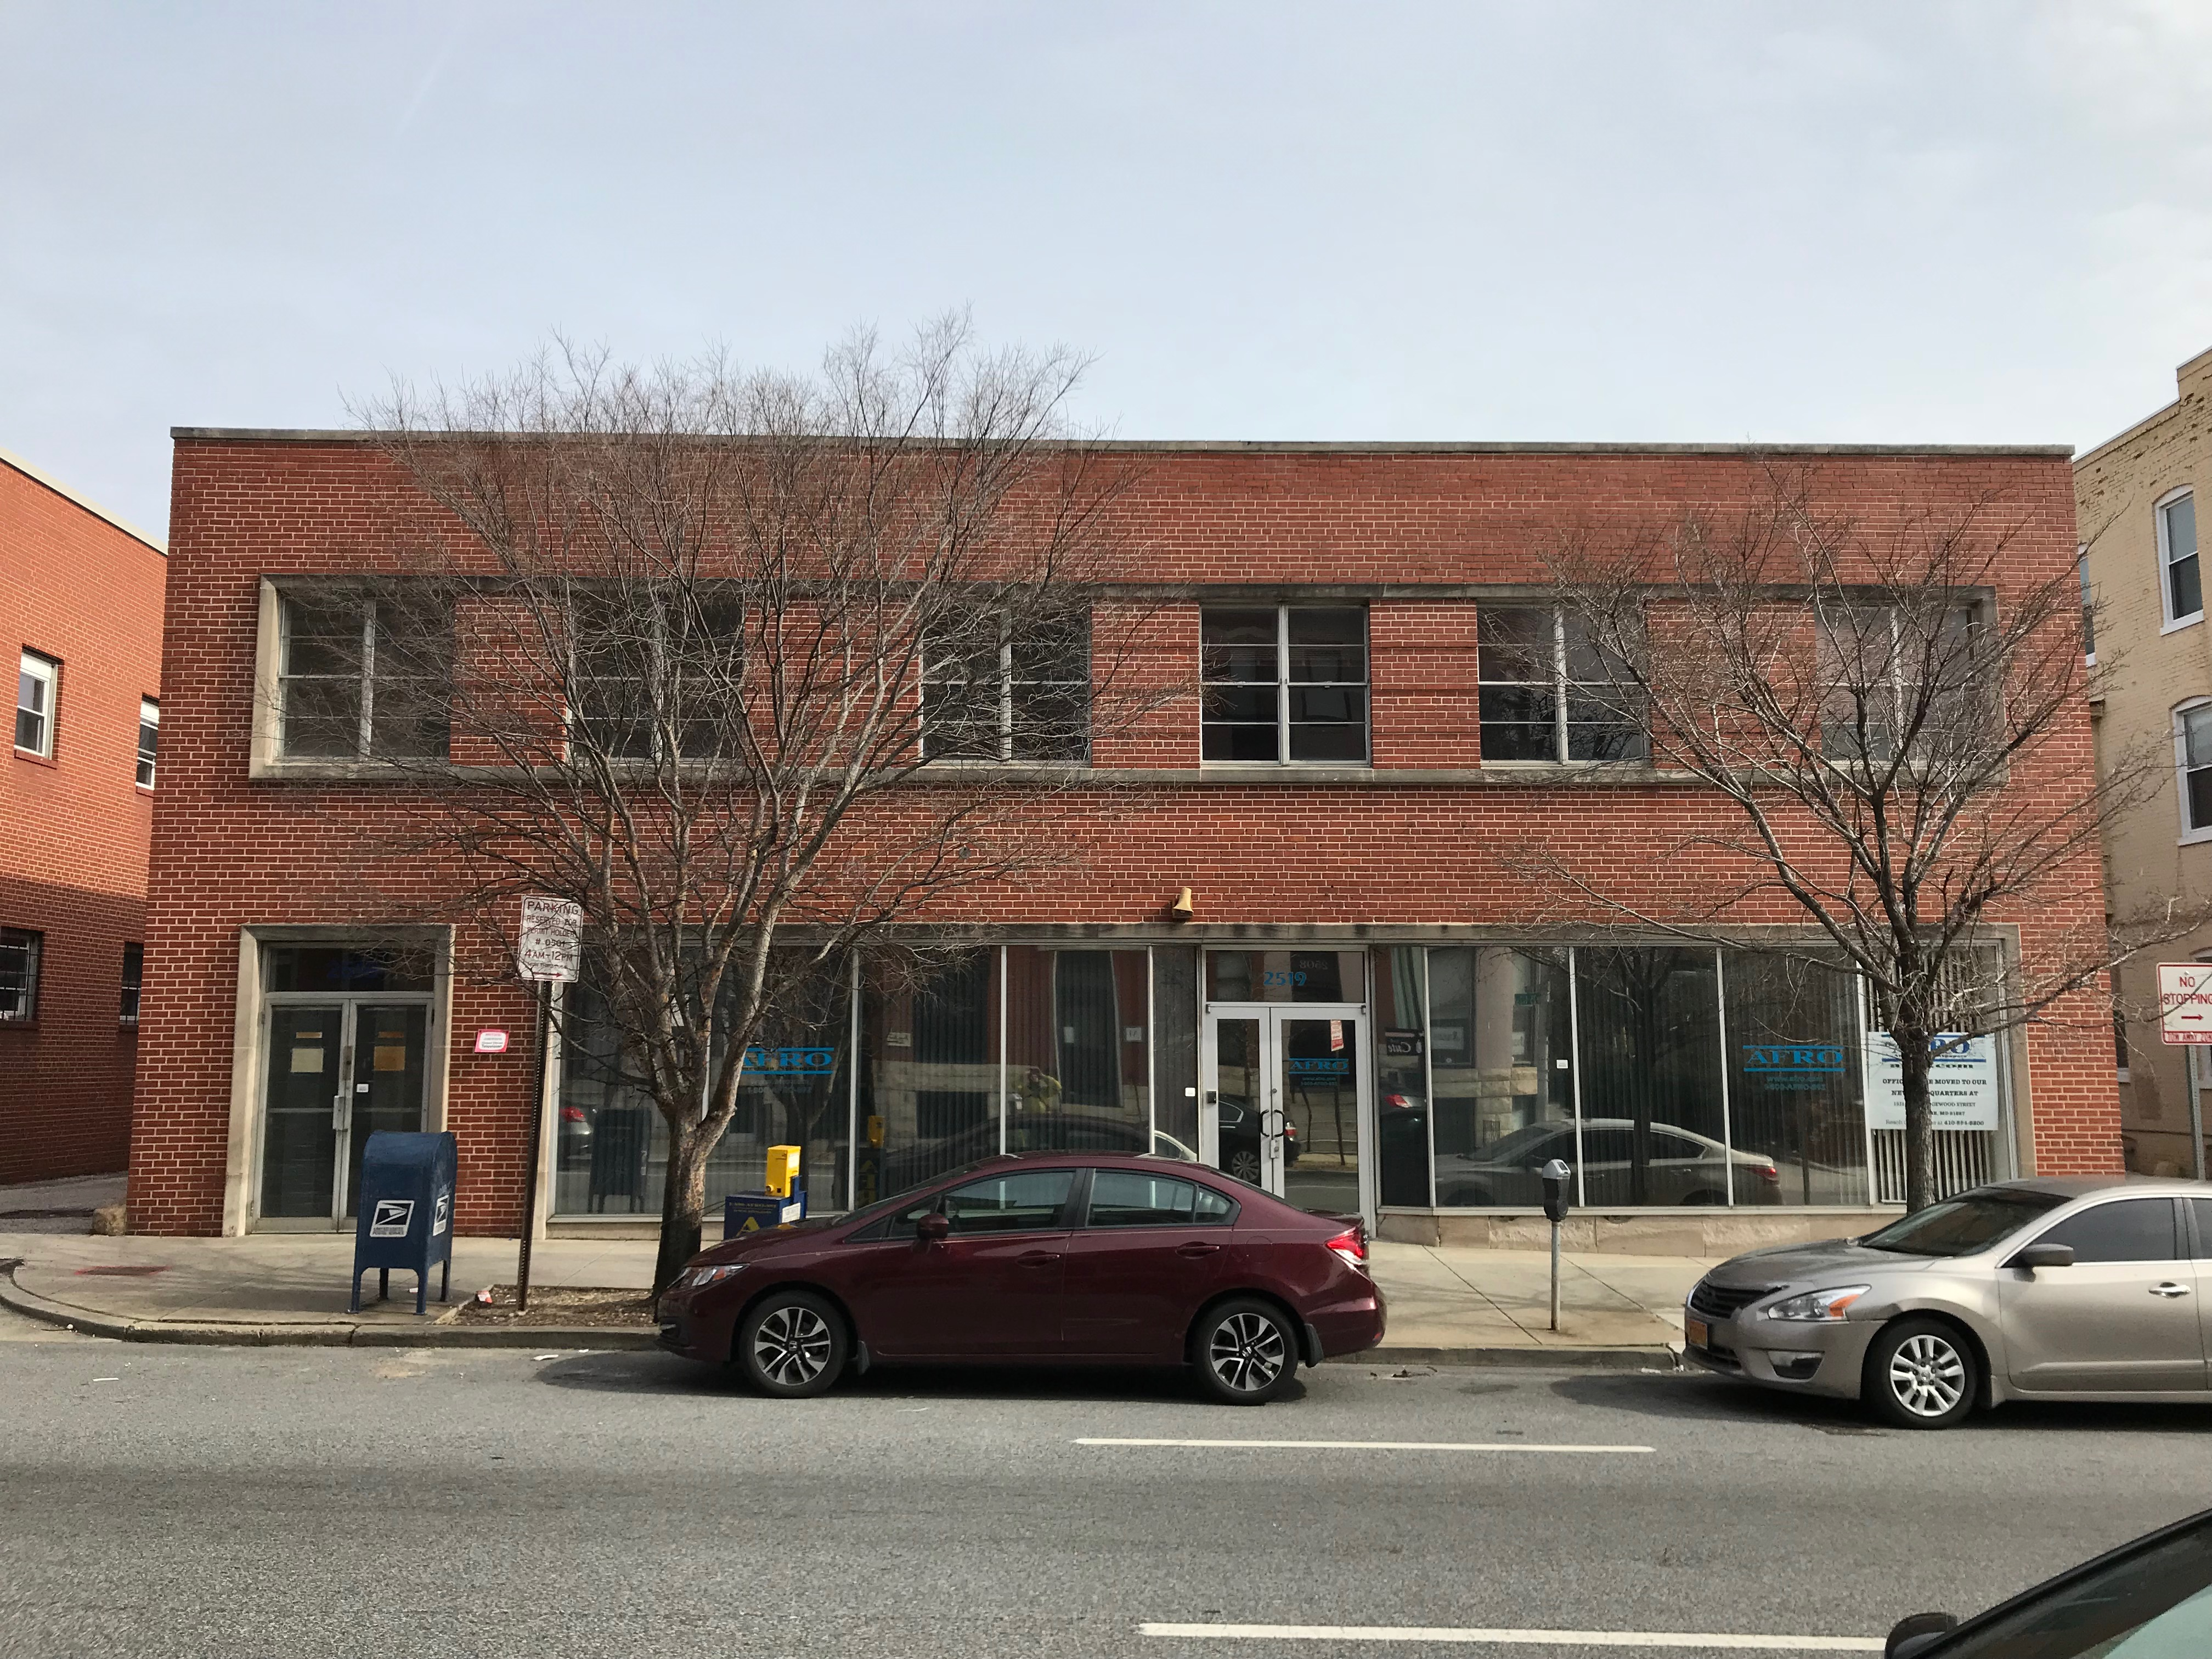 Former offices of Afro-American Newspaper, 2519 N. Charles Street, Baltimore, MD 21218, Baltimore, Building, Car, Charles Street, HQ Photo